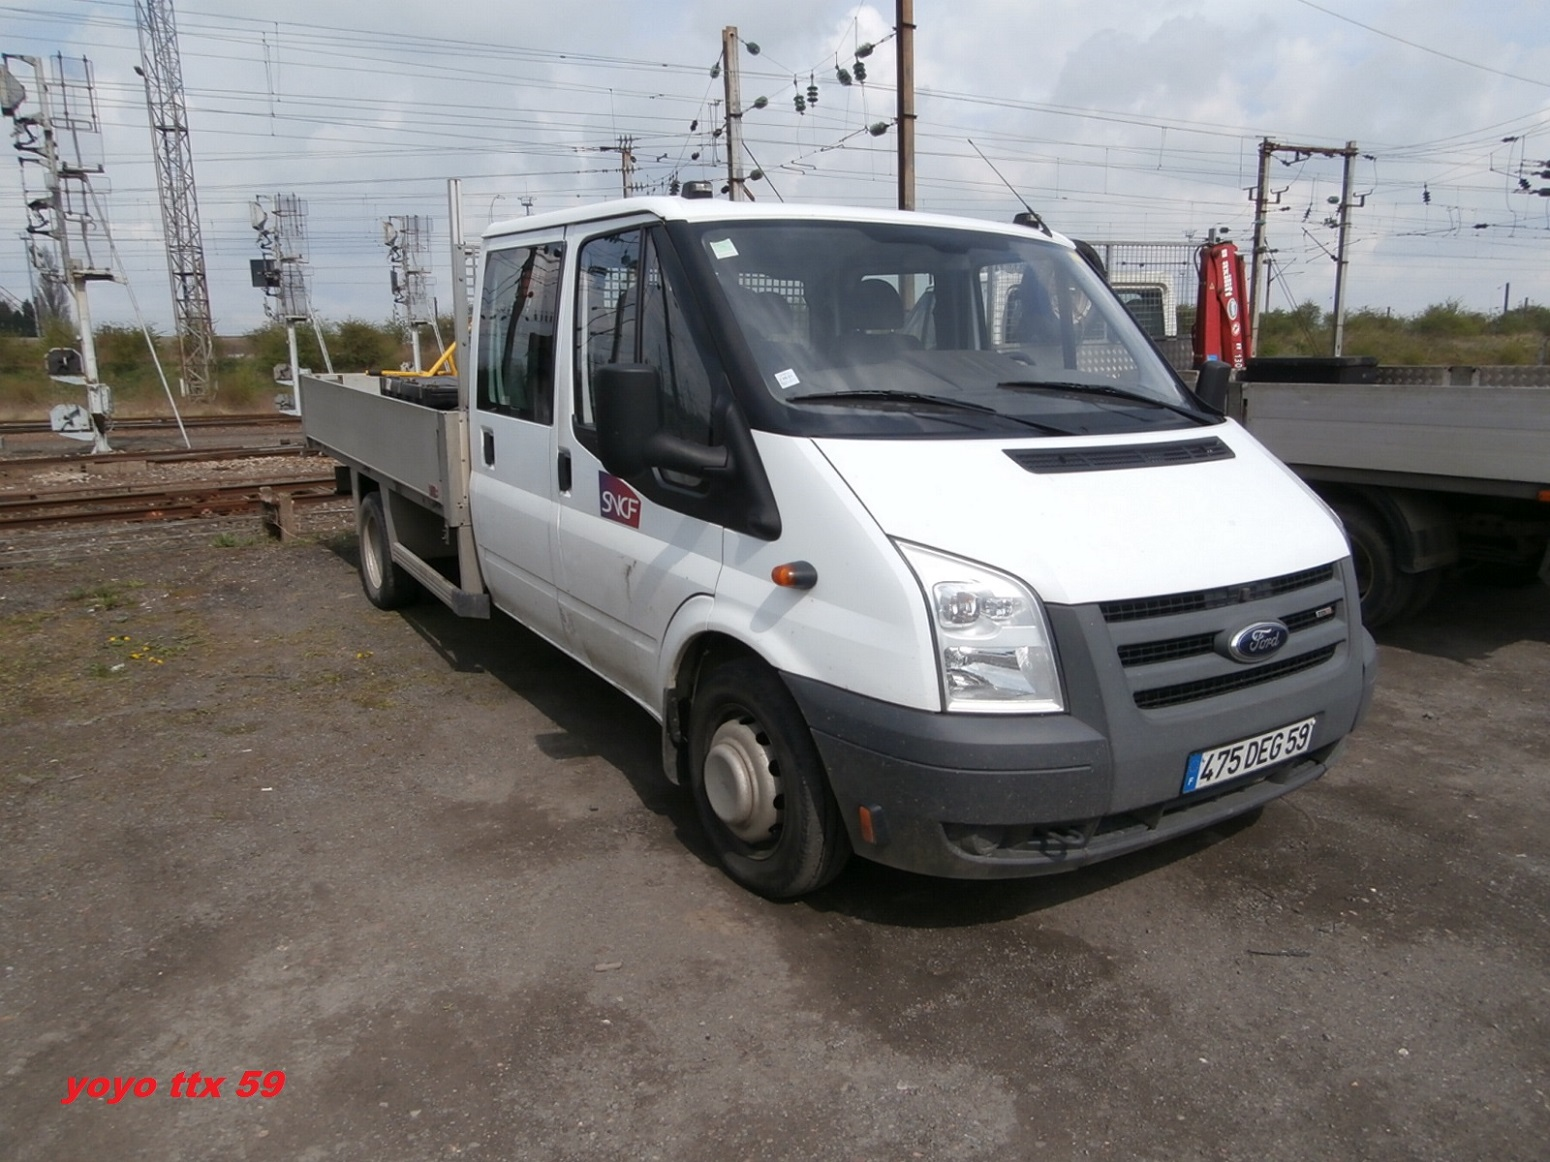 FORD TRANSIT 475DEG59=1 - Copie.JPG